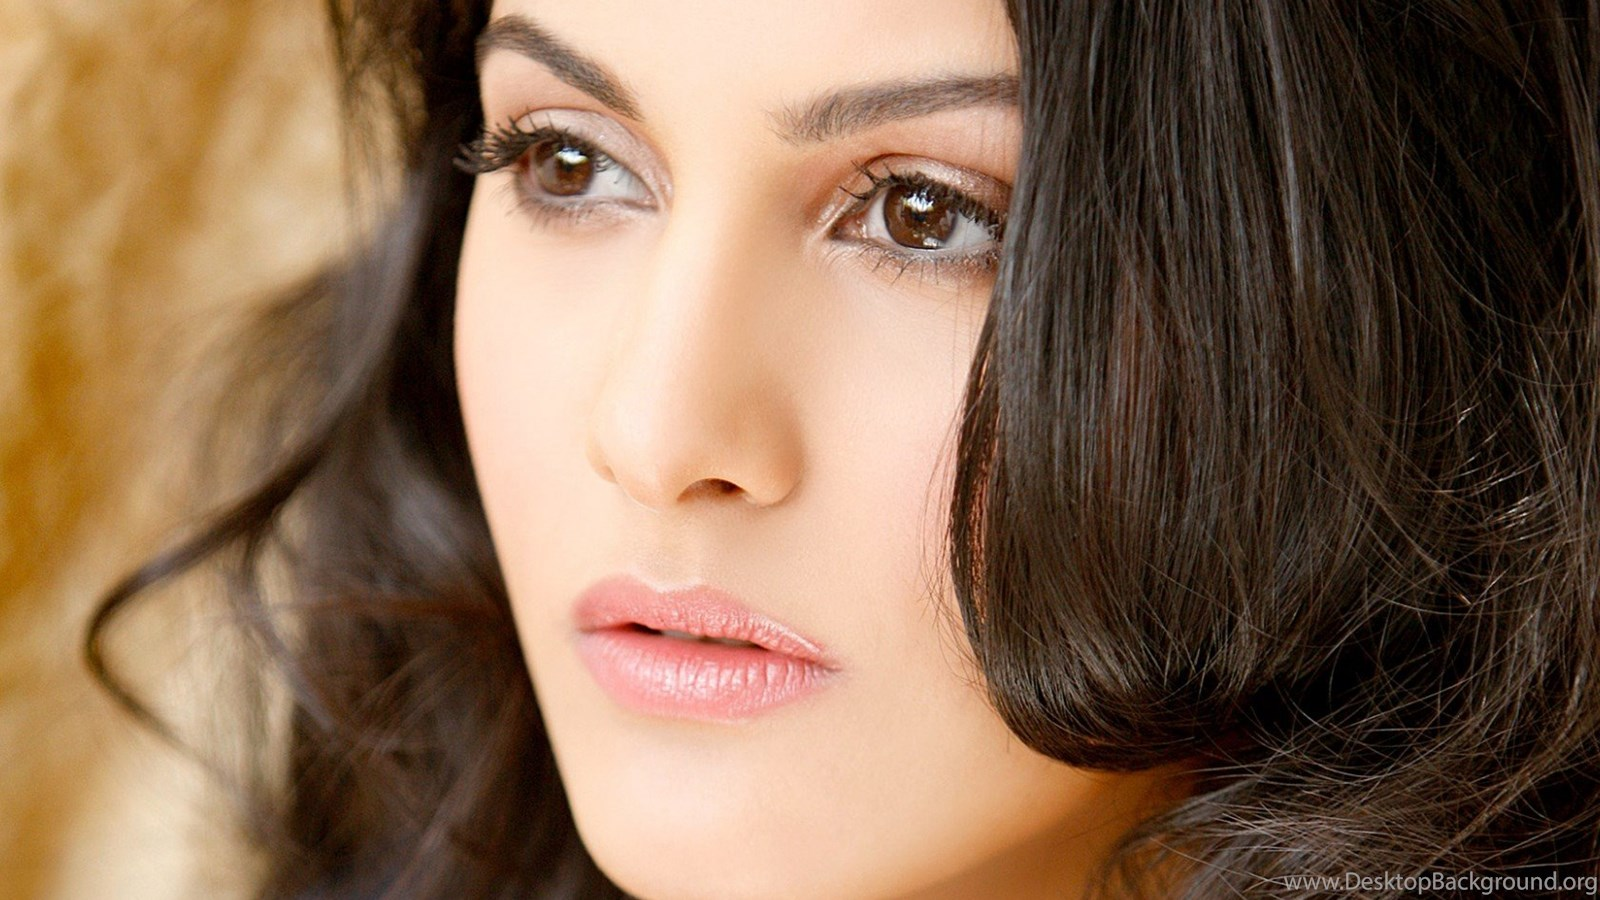 Amyra Dastur Face Wallpapers HD Download Of Indian Actress ...